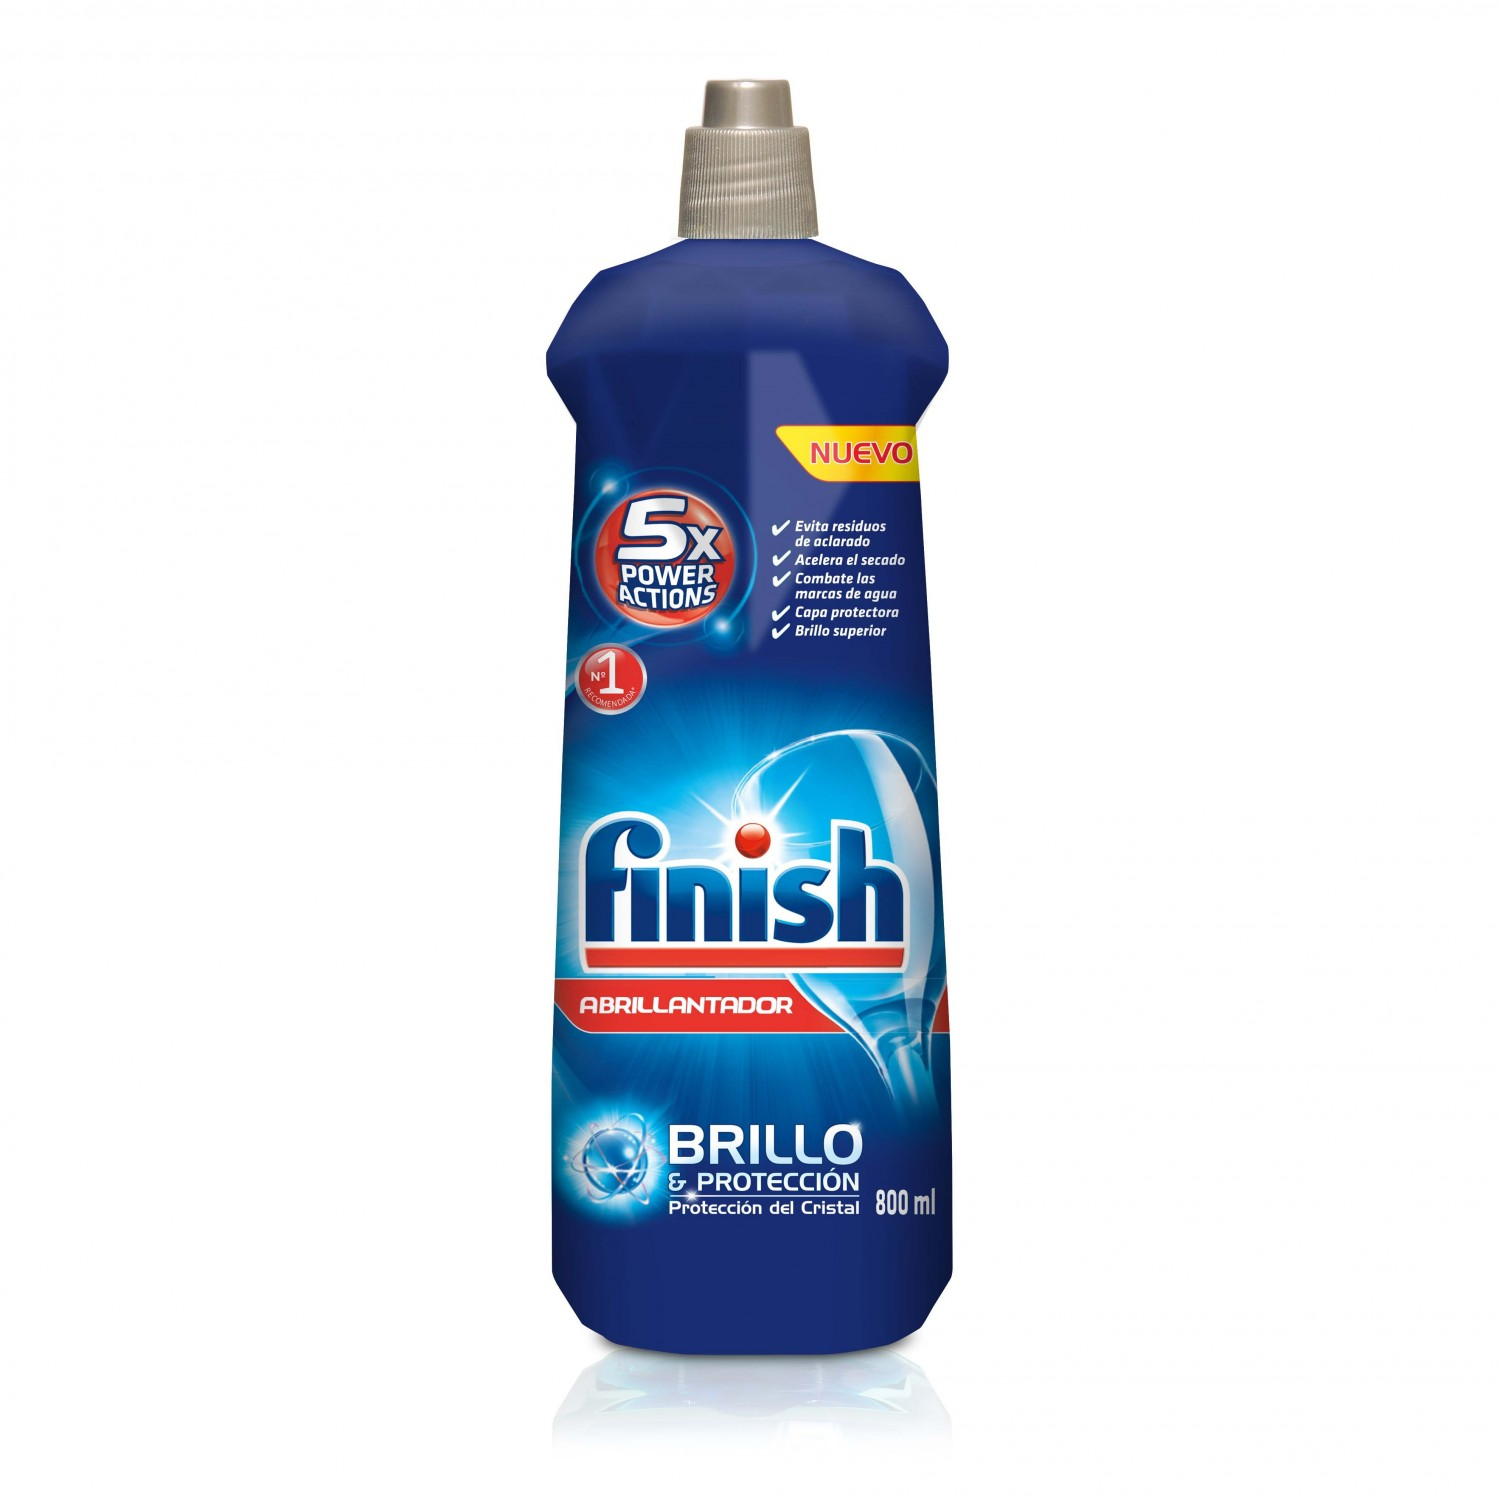 Finish abrillantador lavavajillas brillo proteccion del cristal de 80cl. en botella